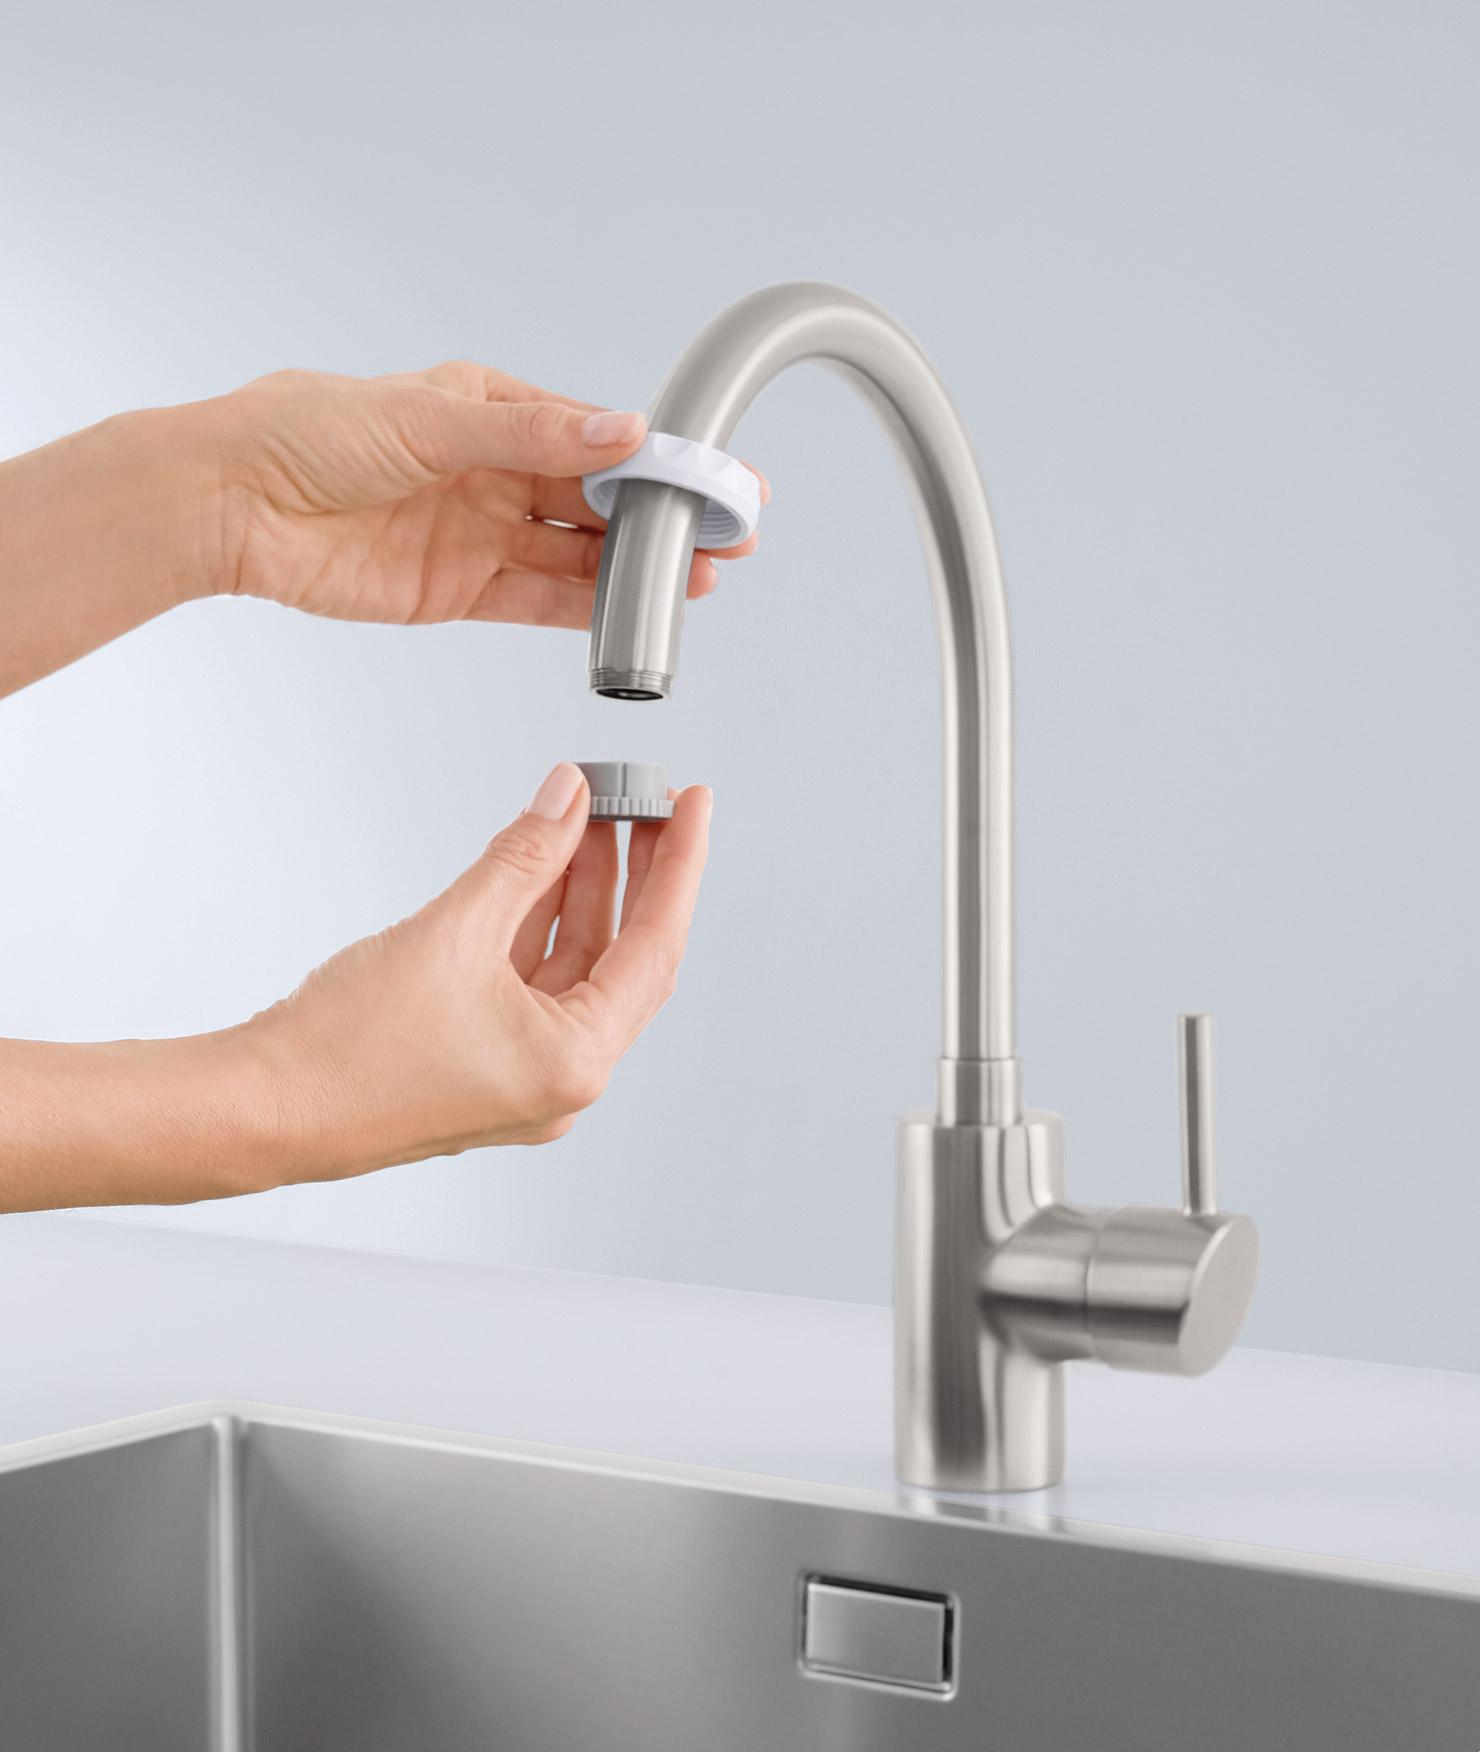 BRITA On Tap Water Filter is being installed.